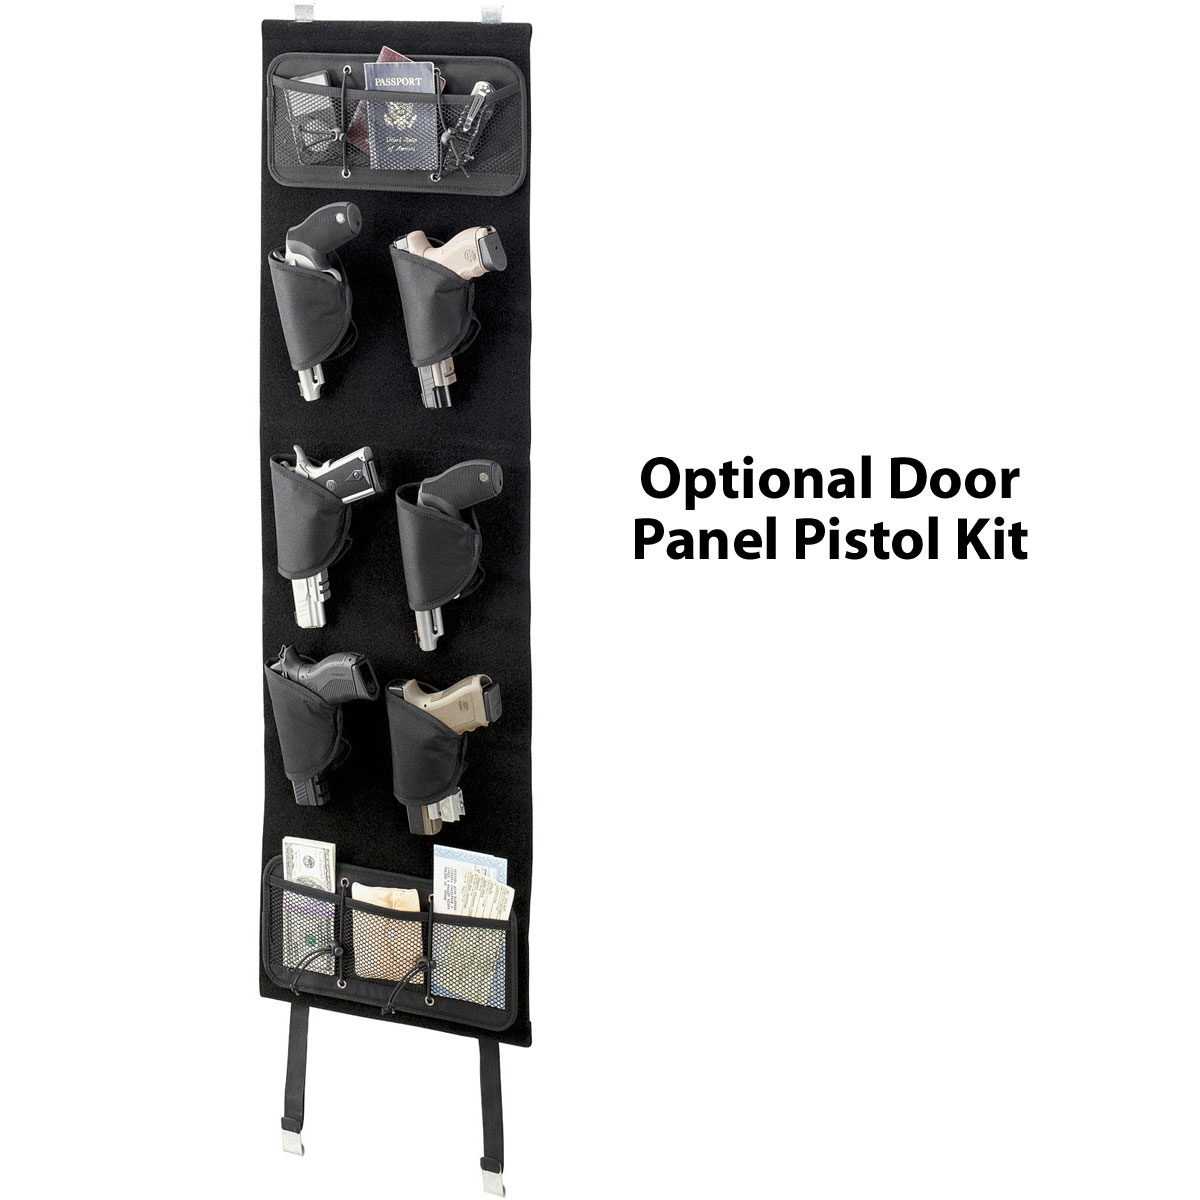 Door panel pistol kit